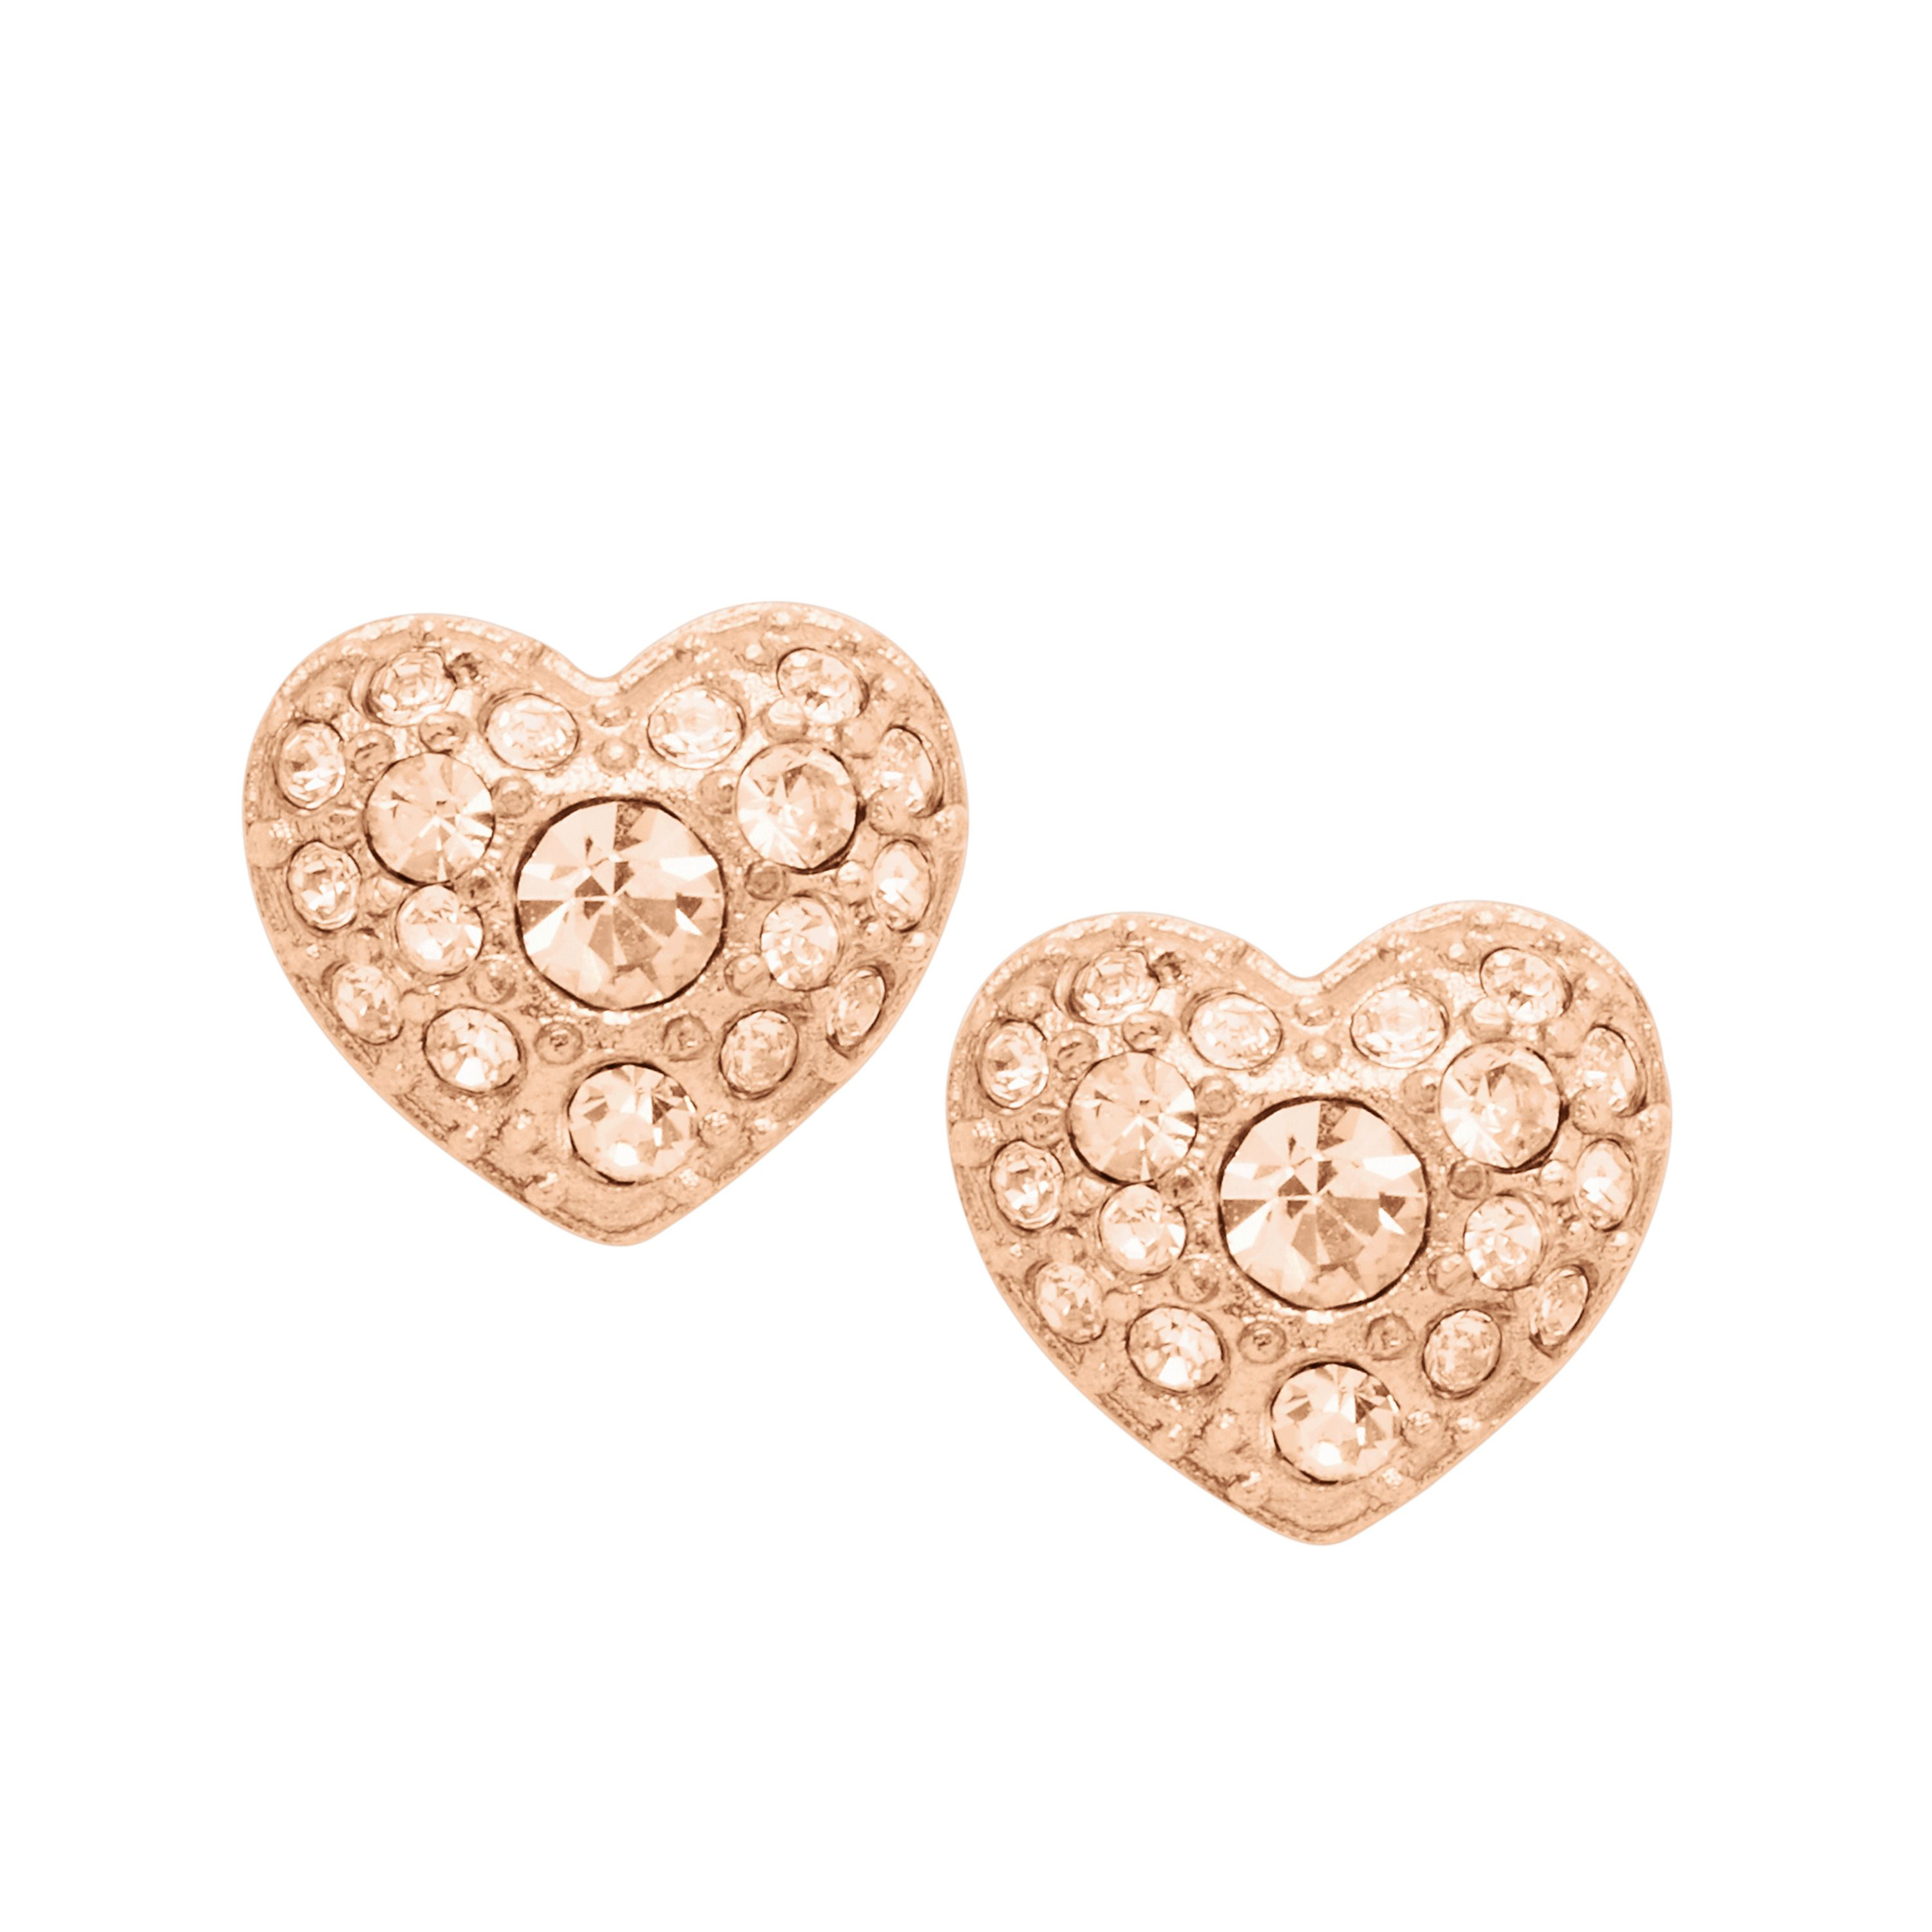 Fossil Jf01151791 ladies earrings, Rose Gold